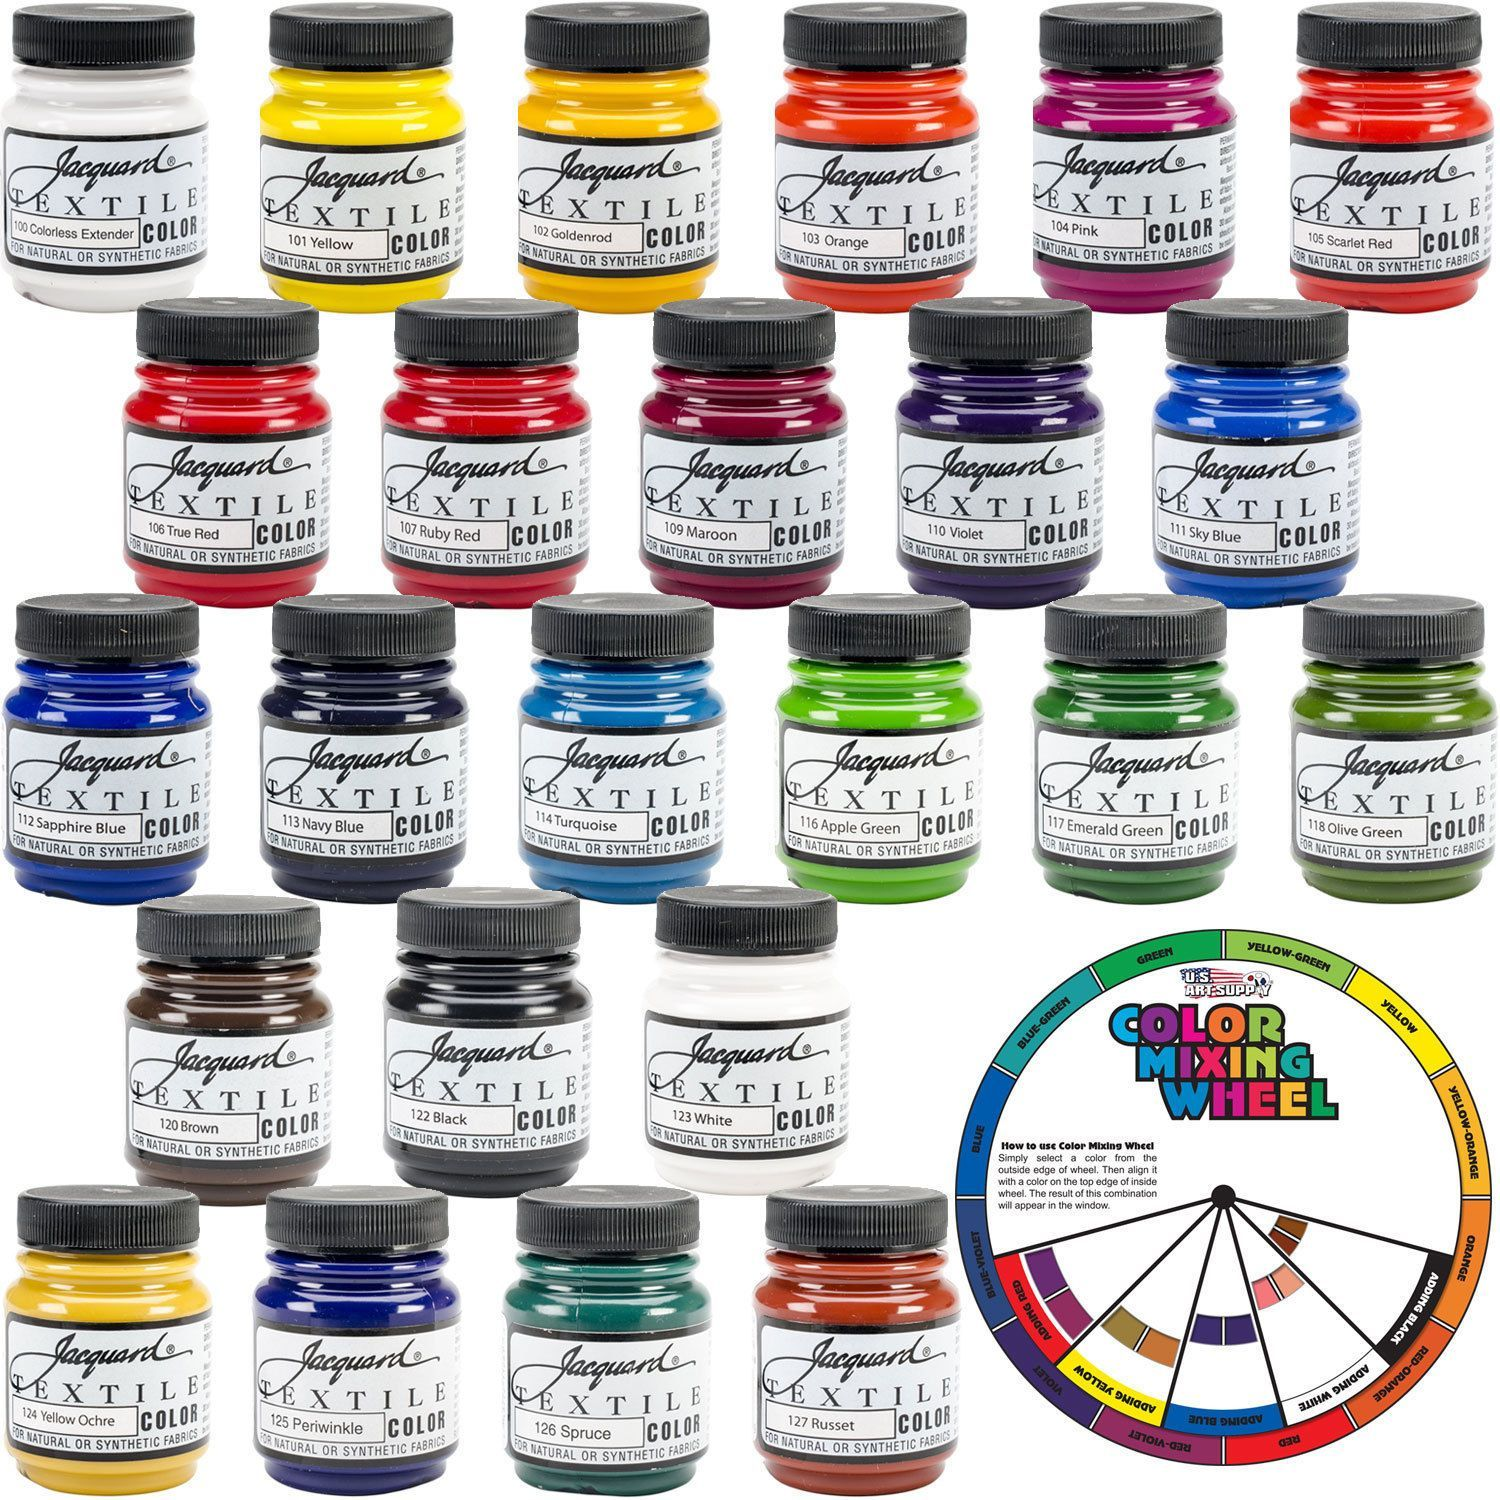 Jacquard Textile Color 24 Assorted Professional Pigment Ink Fabric Paint Set Kit Products Fabric Painting Colour Mixing Wheel Color Mixing